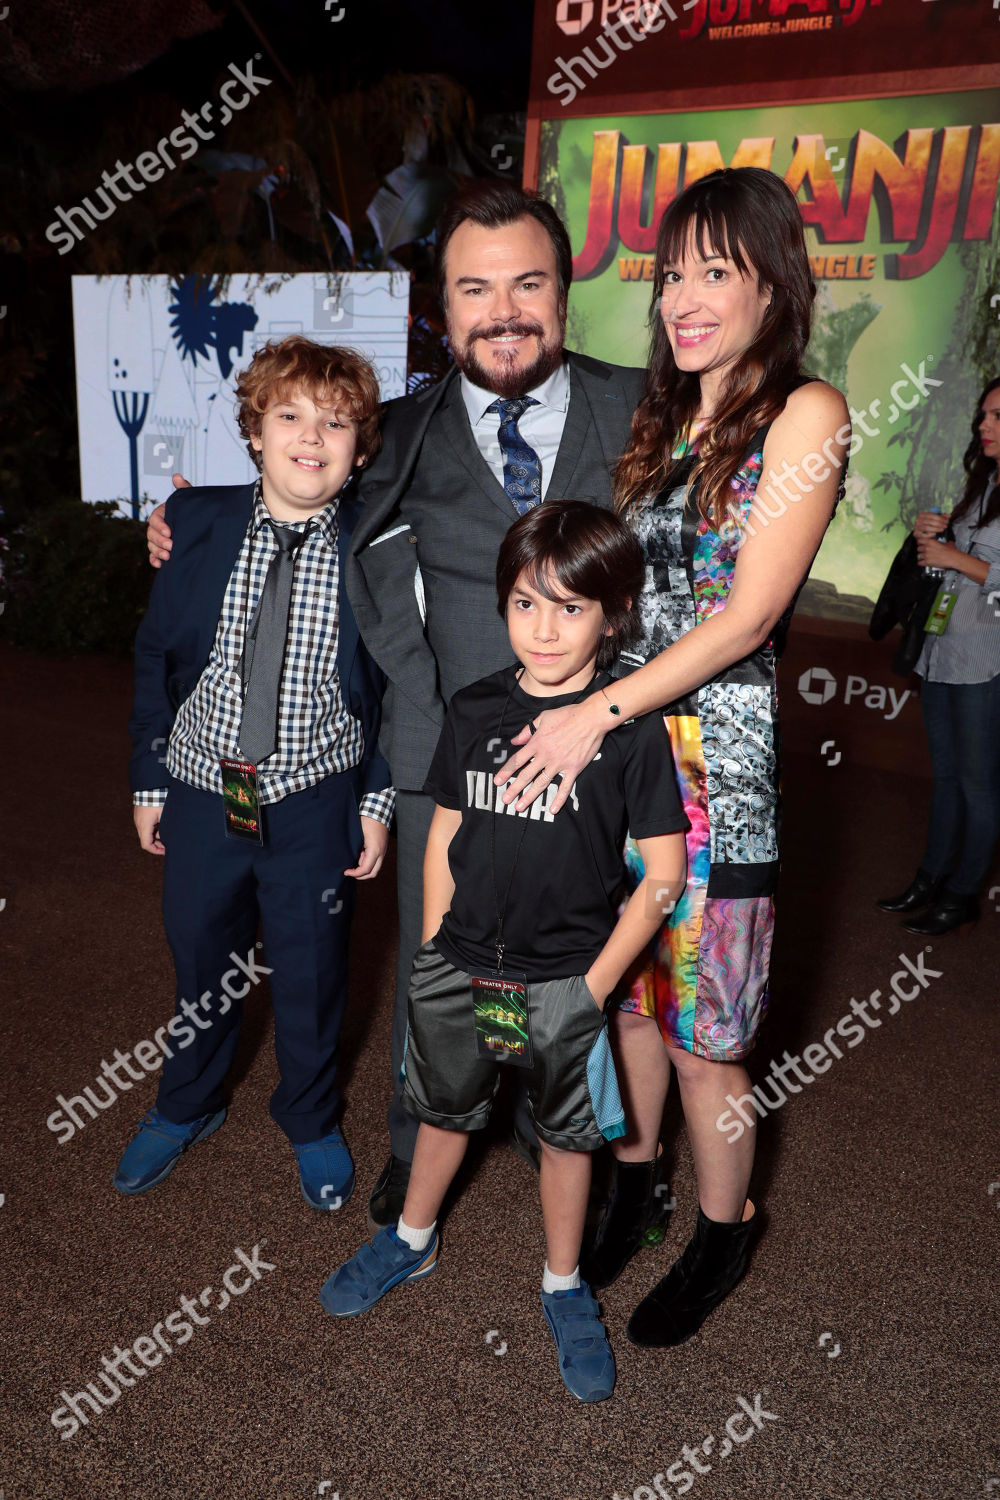 Samuel Jason Black Jack Black Thomas David Editorial Stock Photo Stock Image Shutterstock Latest on te david thomas including news, stats, videos, highlights and more on nfl.com. https www shutterstock com editorial image editorial columbia pictures los angeles premiere of jumanji welcome to the jungle hollywood ca usa 11 december 2017 9276987bs